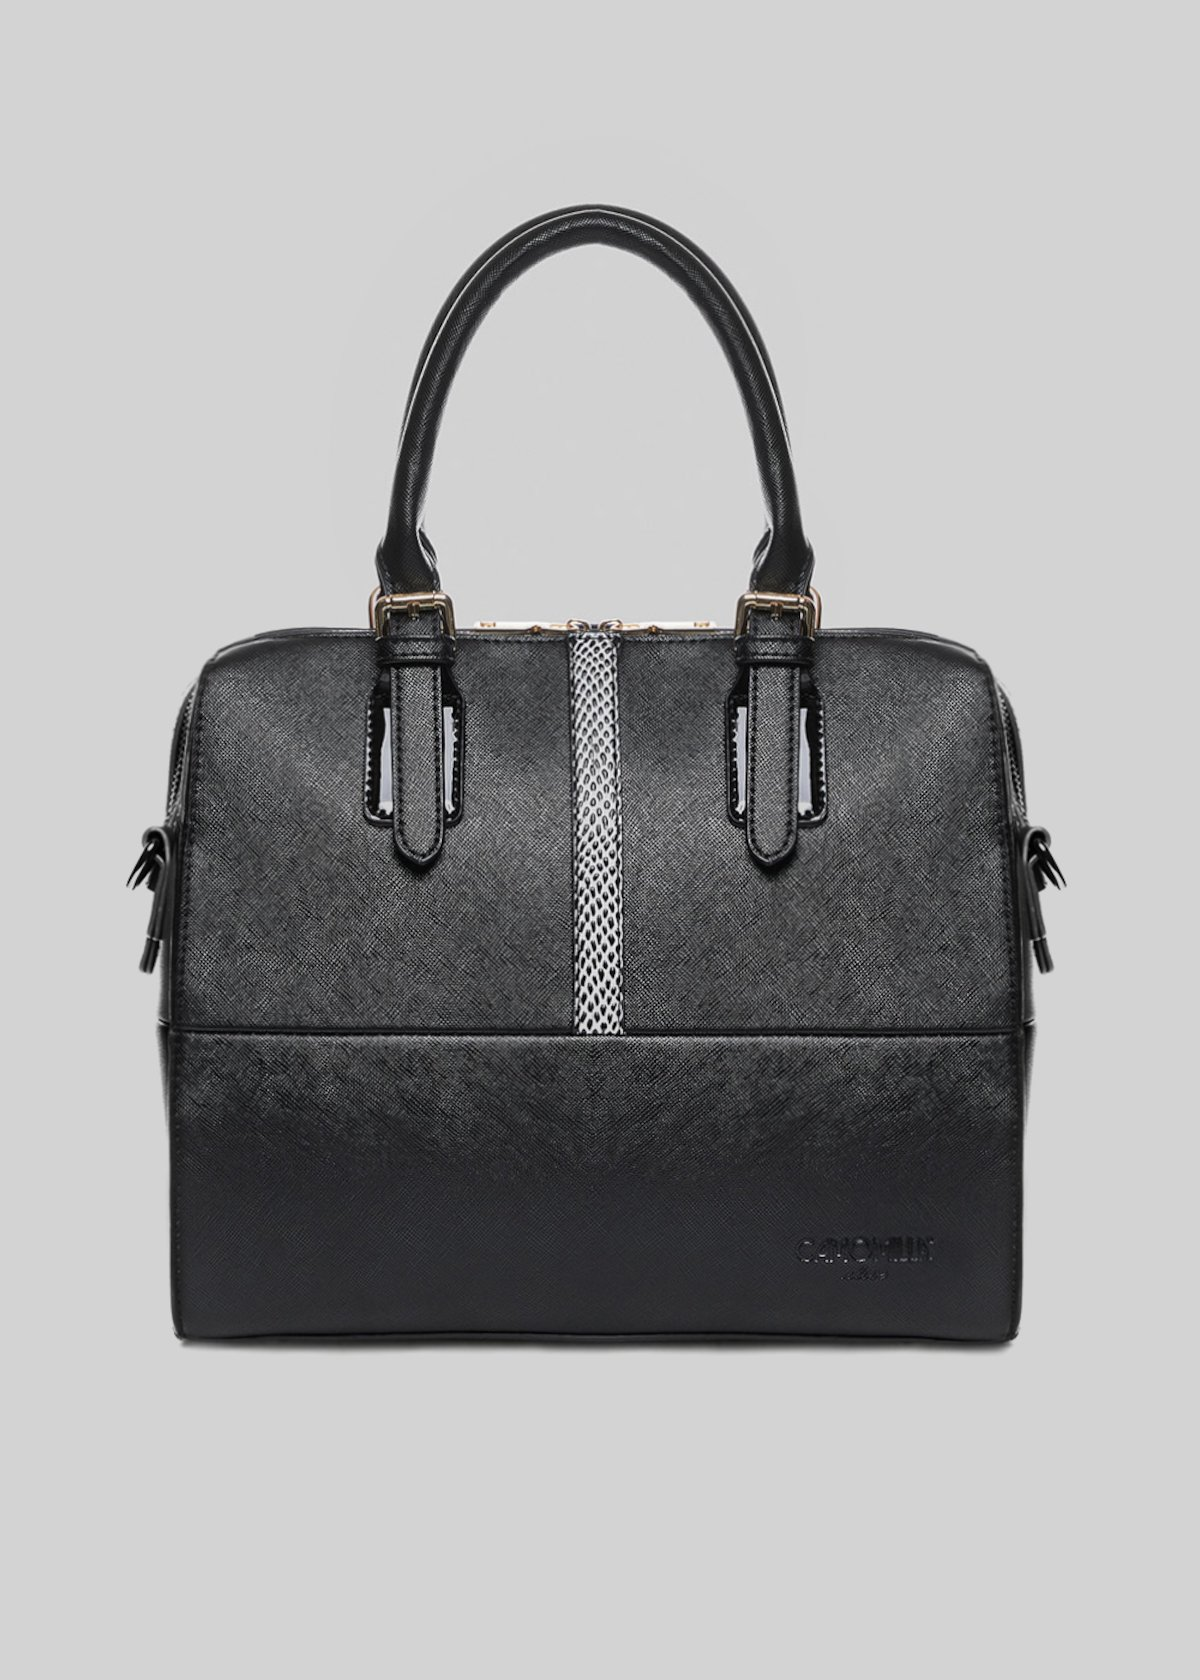 Bloody bag with patent inserts, python and removable chain shoulder strap - Black